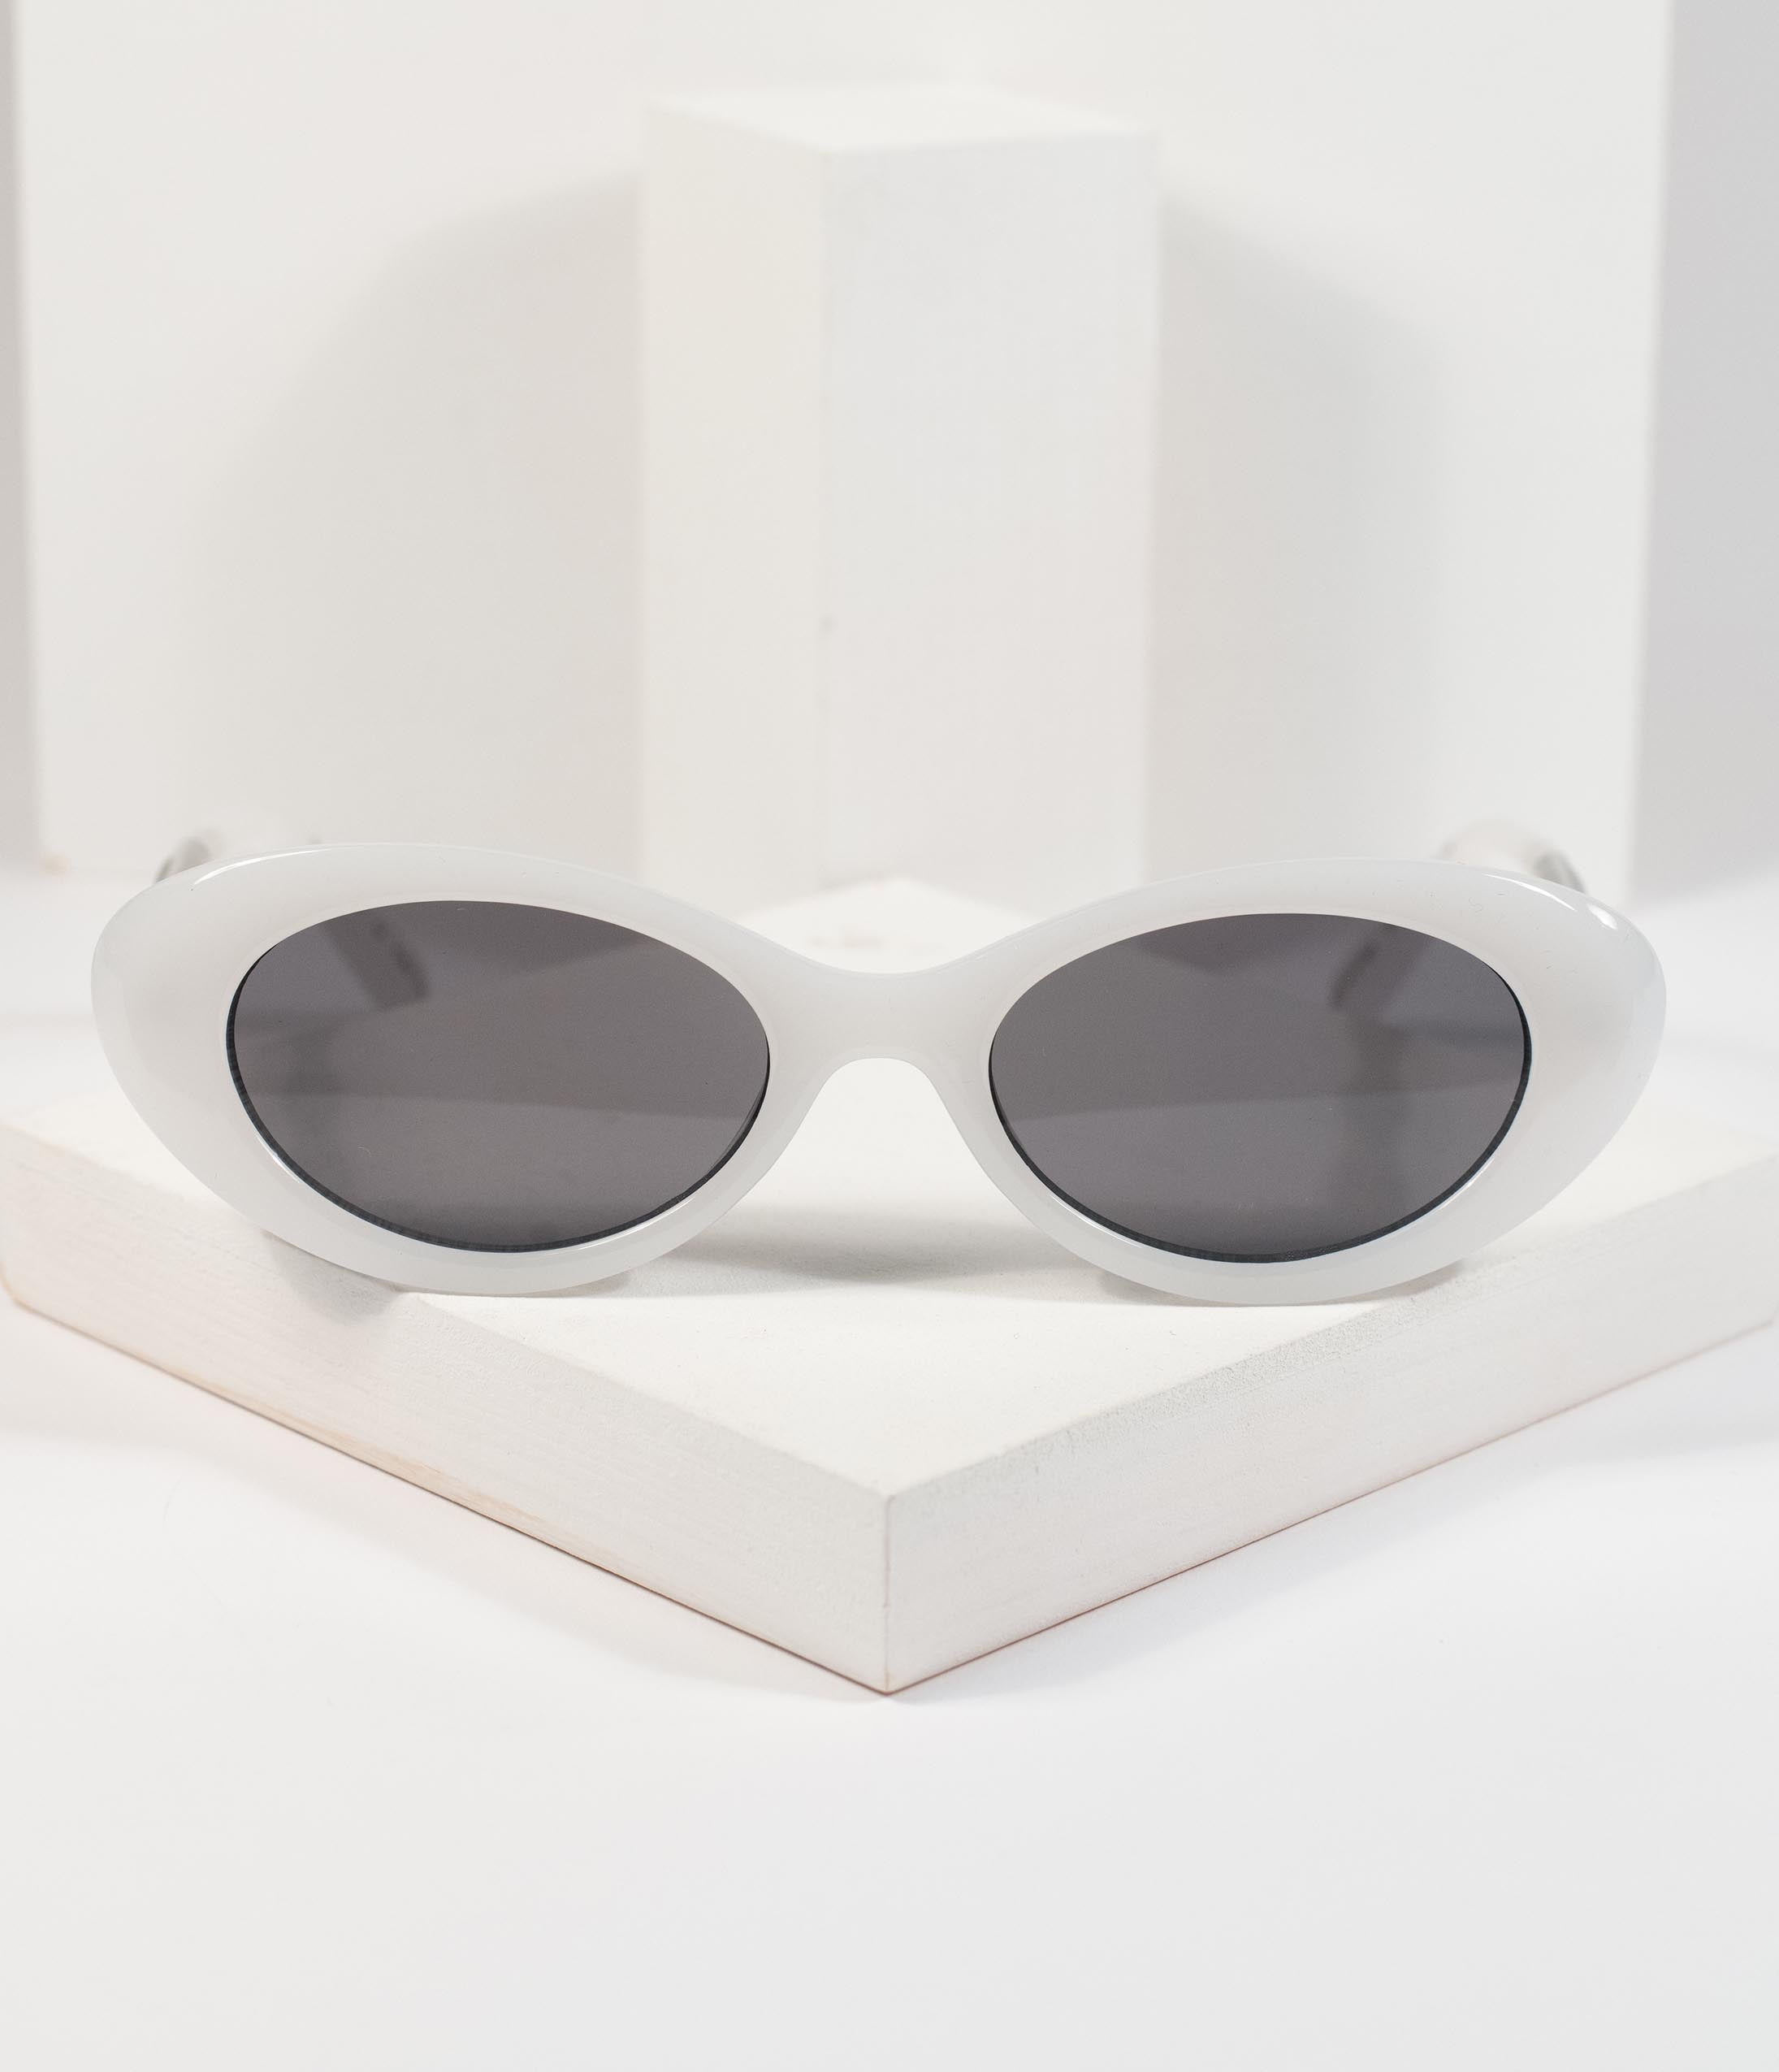 1960s Sunglasses | 70s Sunglasses, 70s Glasses Frosted White Rounded Cateye Pretty Tat Sunglasses $26.00 AT vintagedancer.com